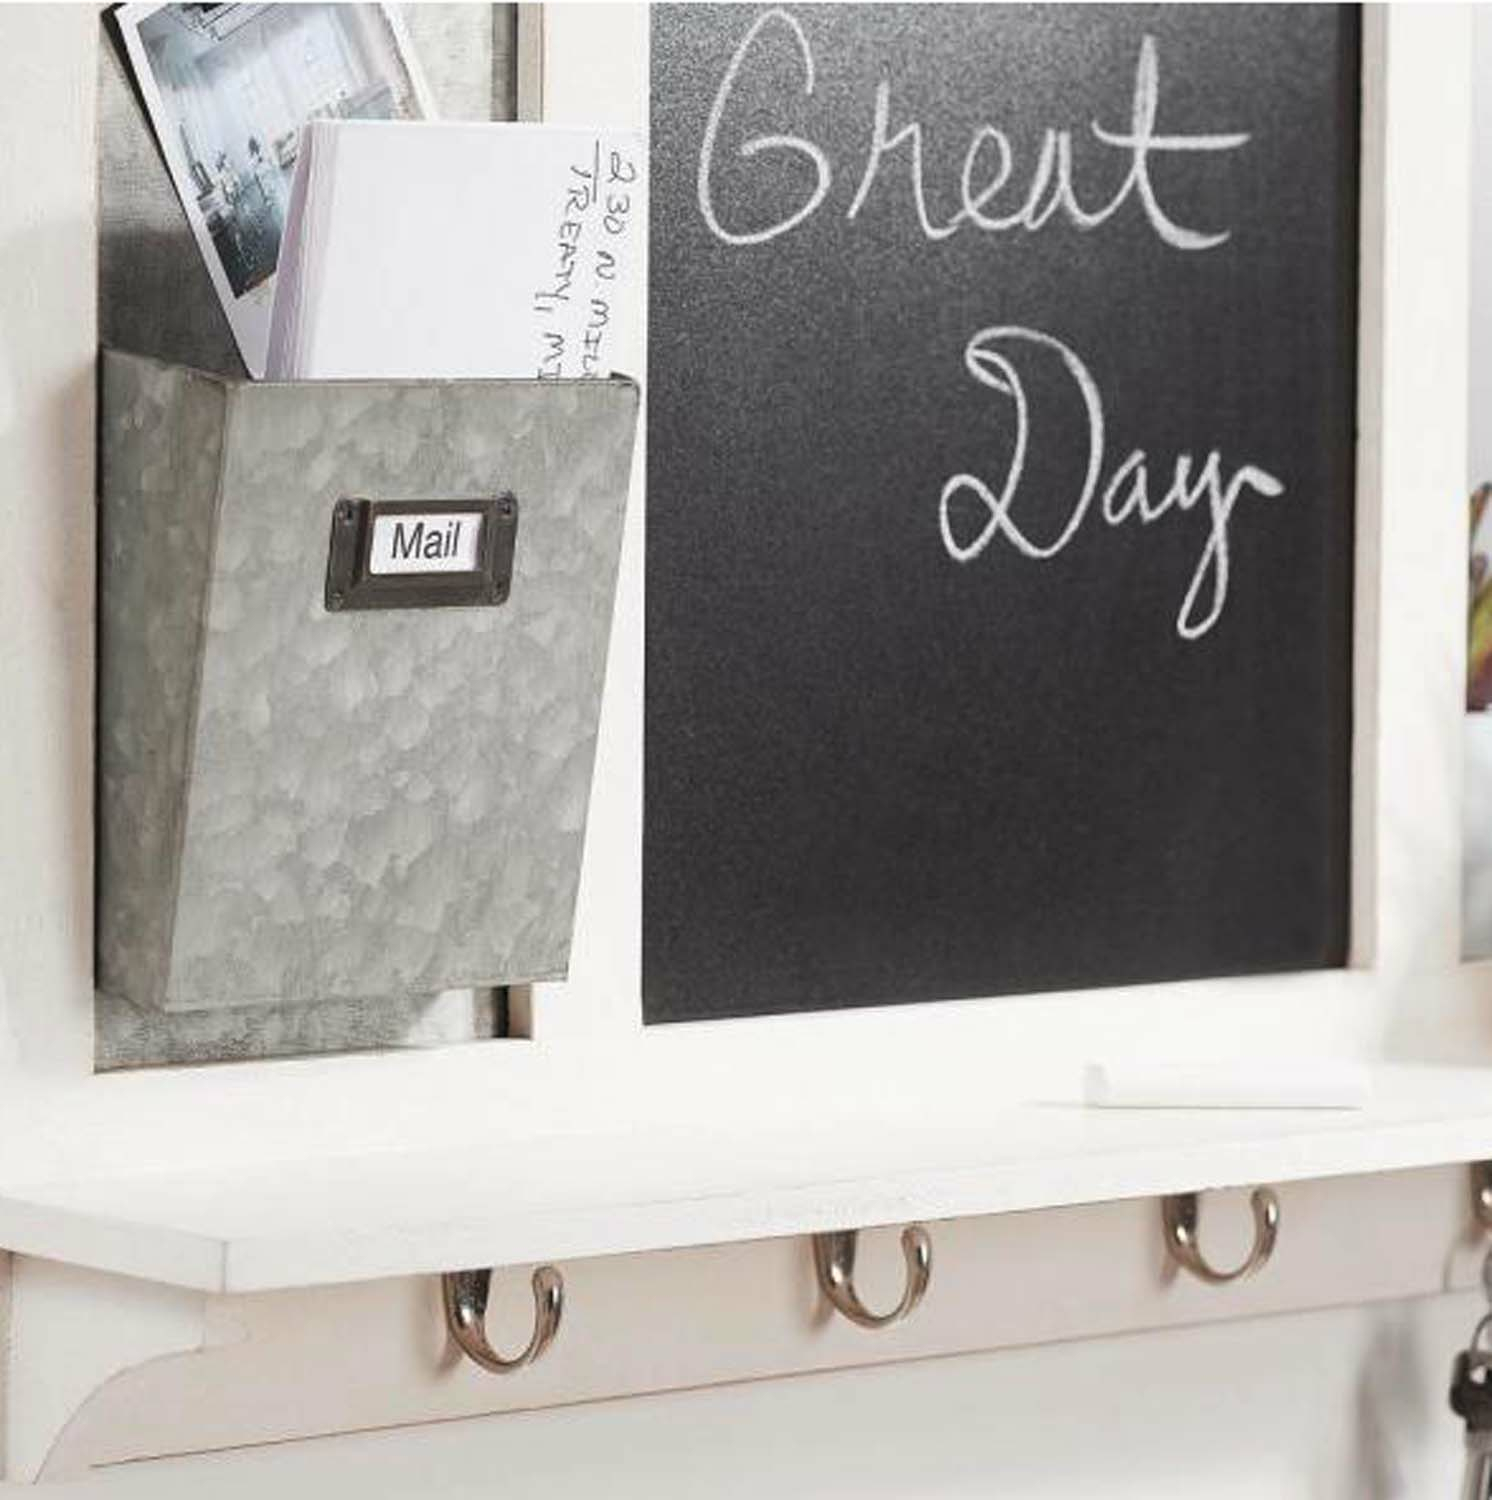 White Multi-Functional Decorative Wall Organizer With Hooks